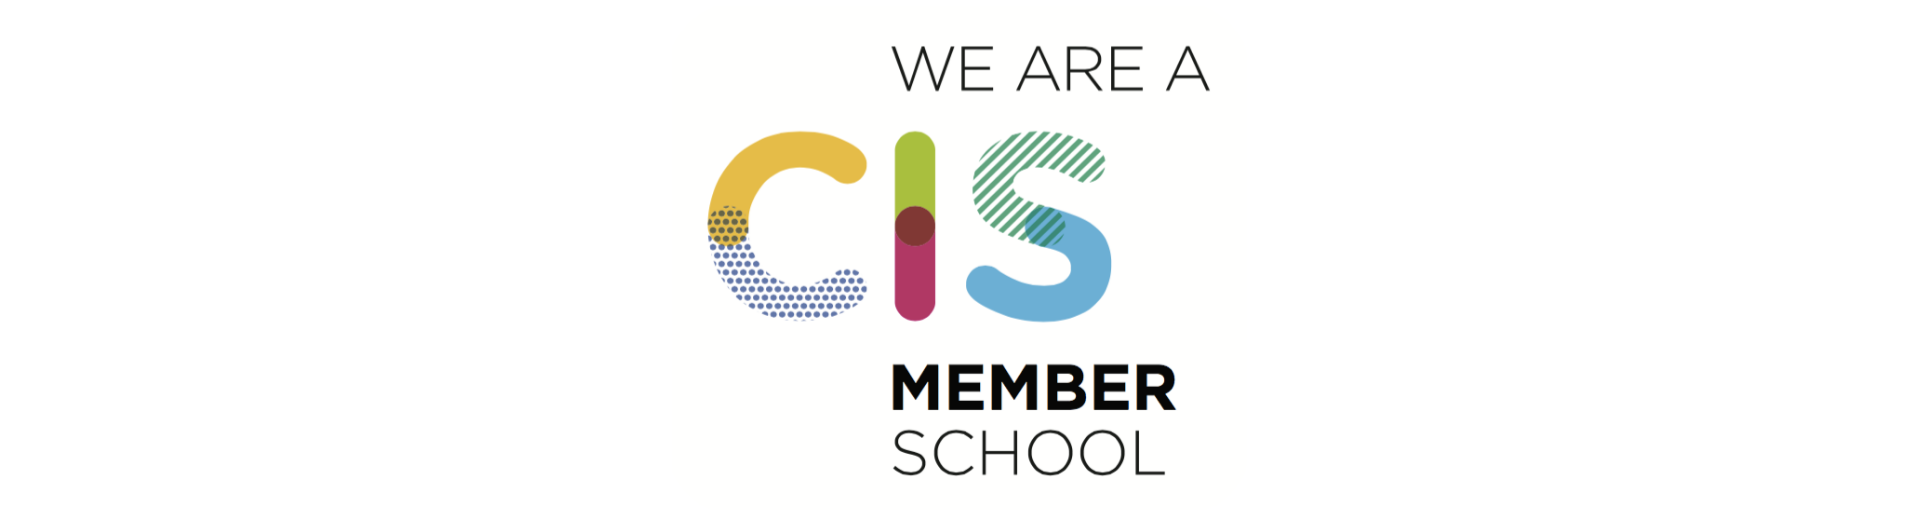 Budapest School is a member of Council of International Schools (CIS) since June of 2020.